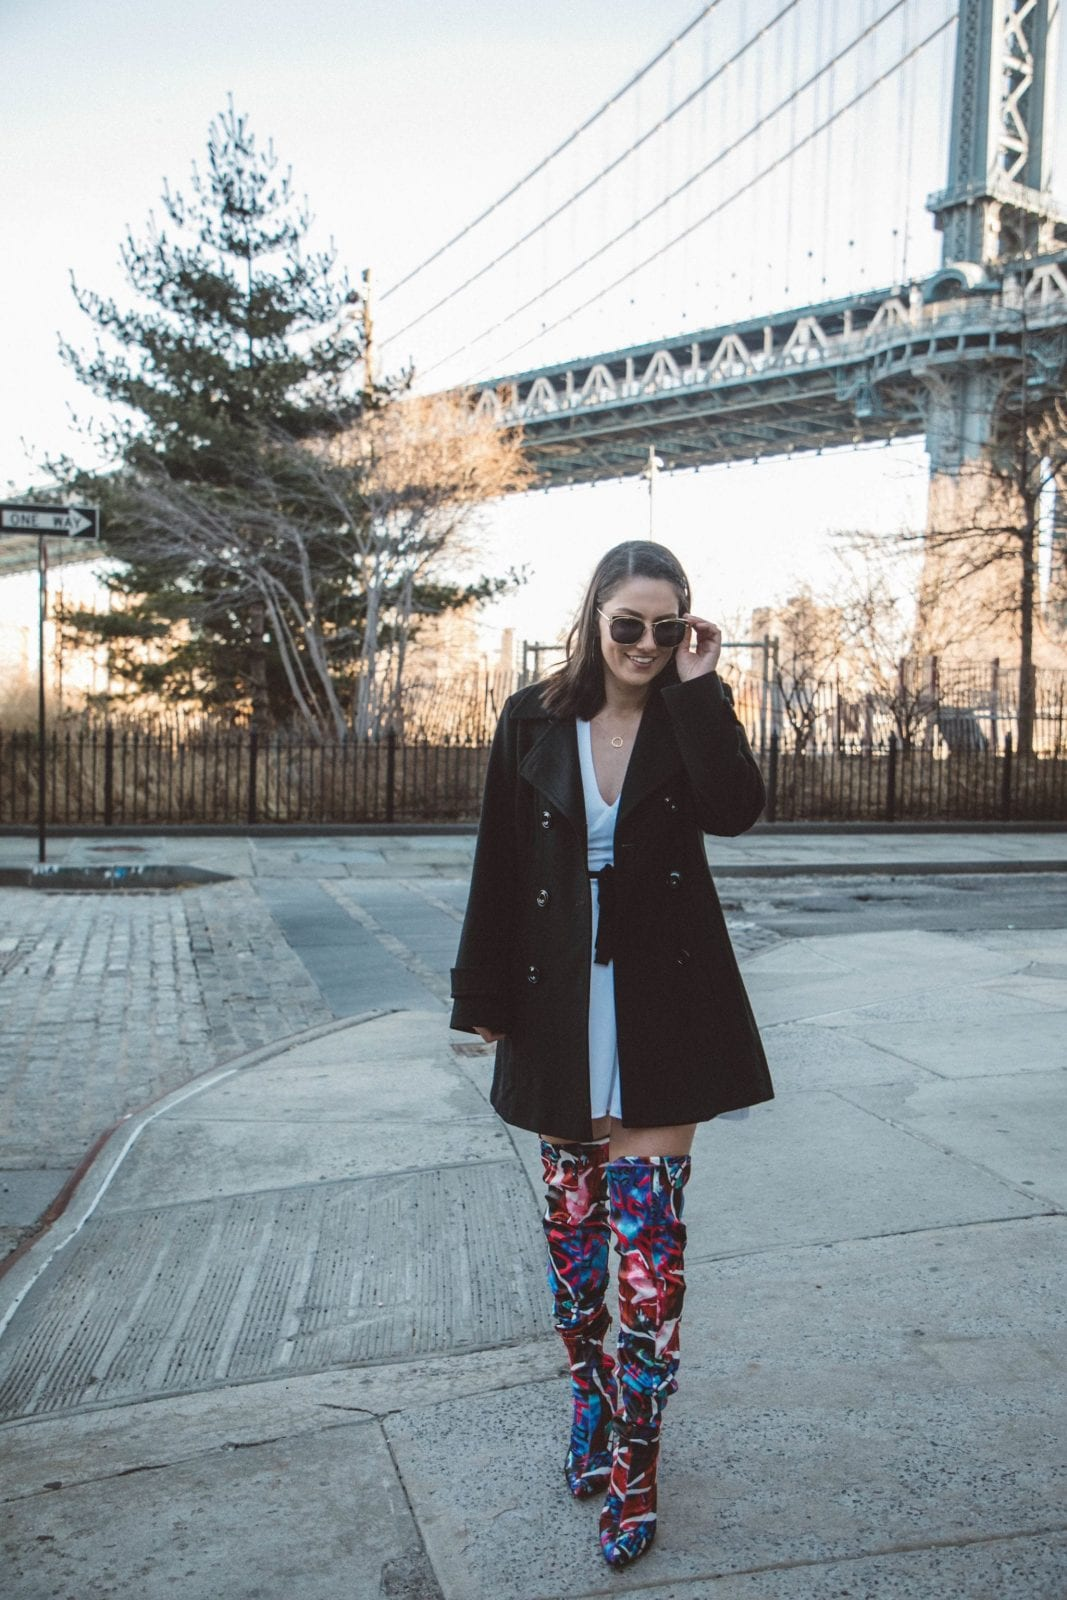 This is a photo of me standing outside in Dumbo, Brooklyn in my nighttime look.